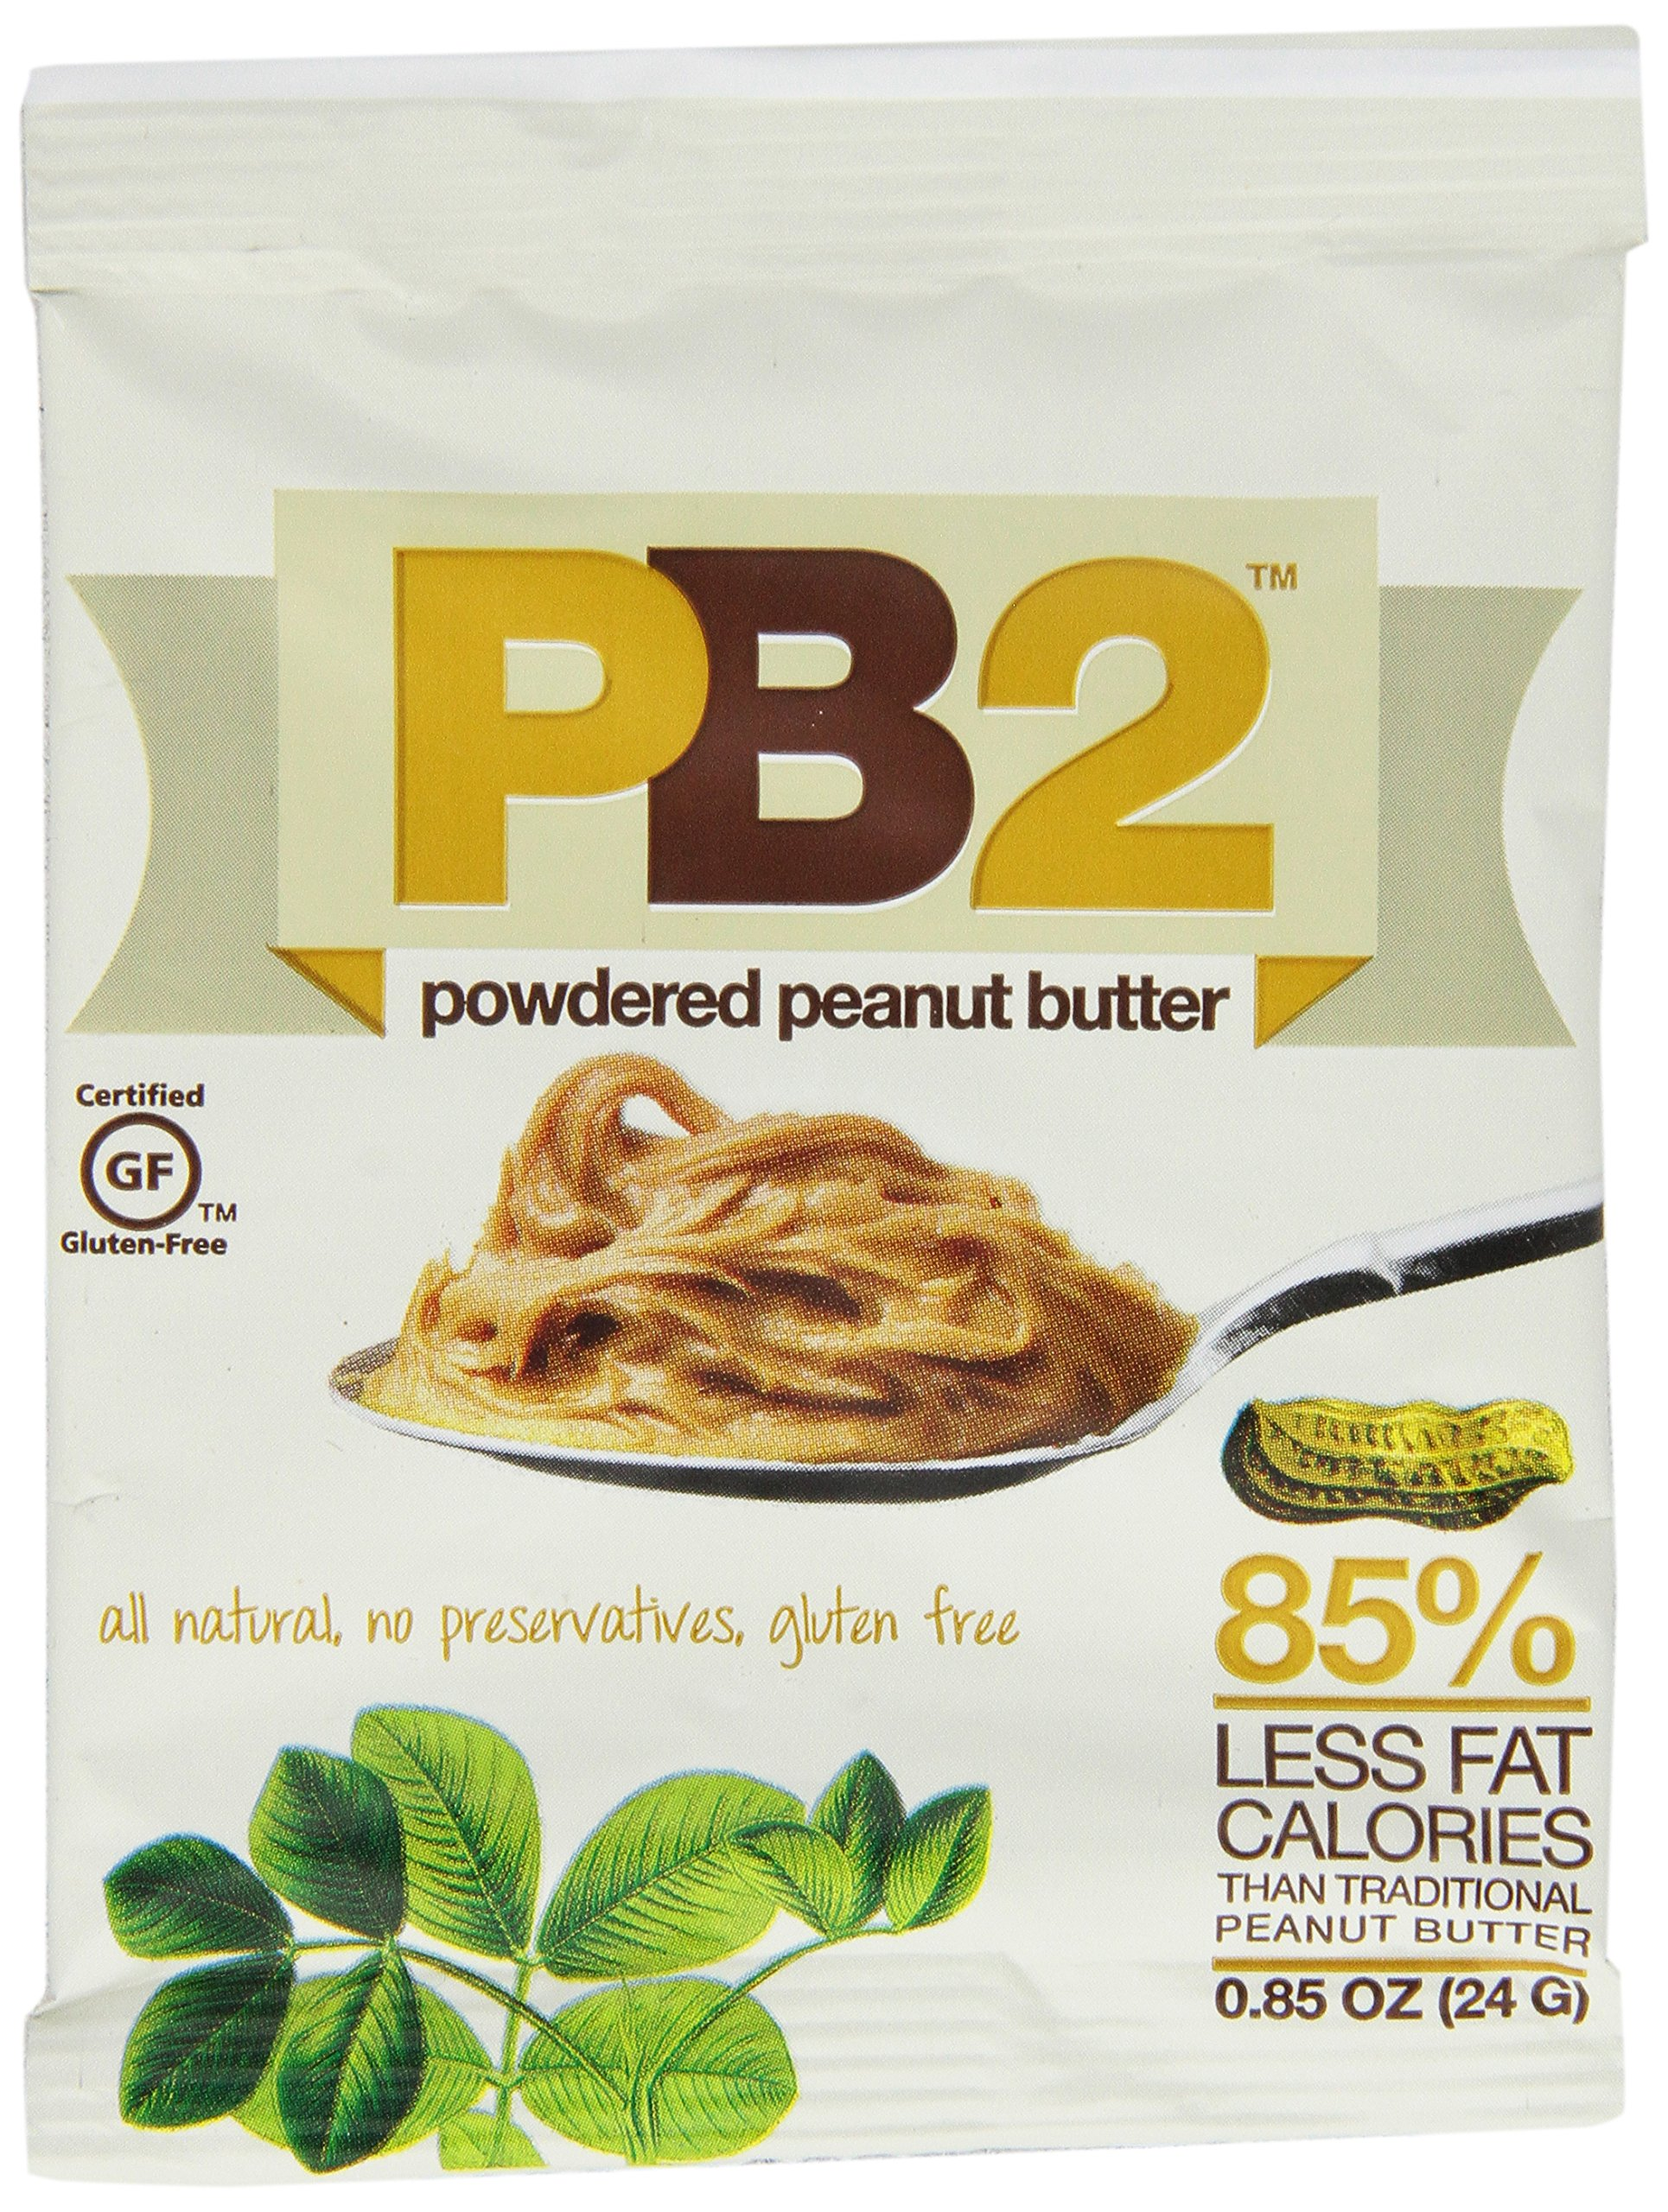 Bell Plantation PB2 Powdered Peanut Butter, 0.85 ounces(Pack of 12) by PB2